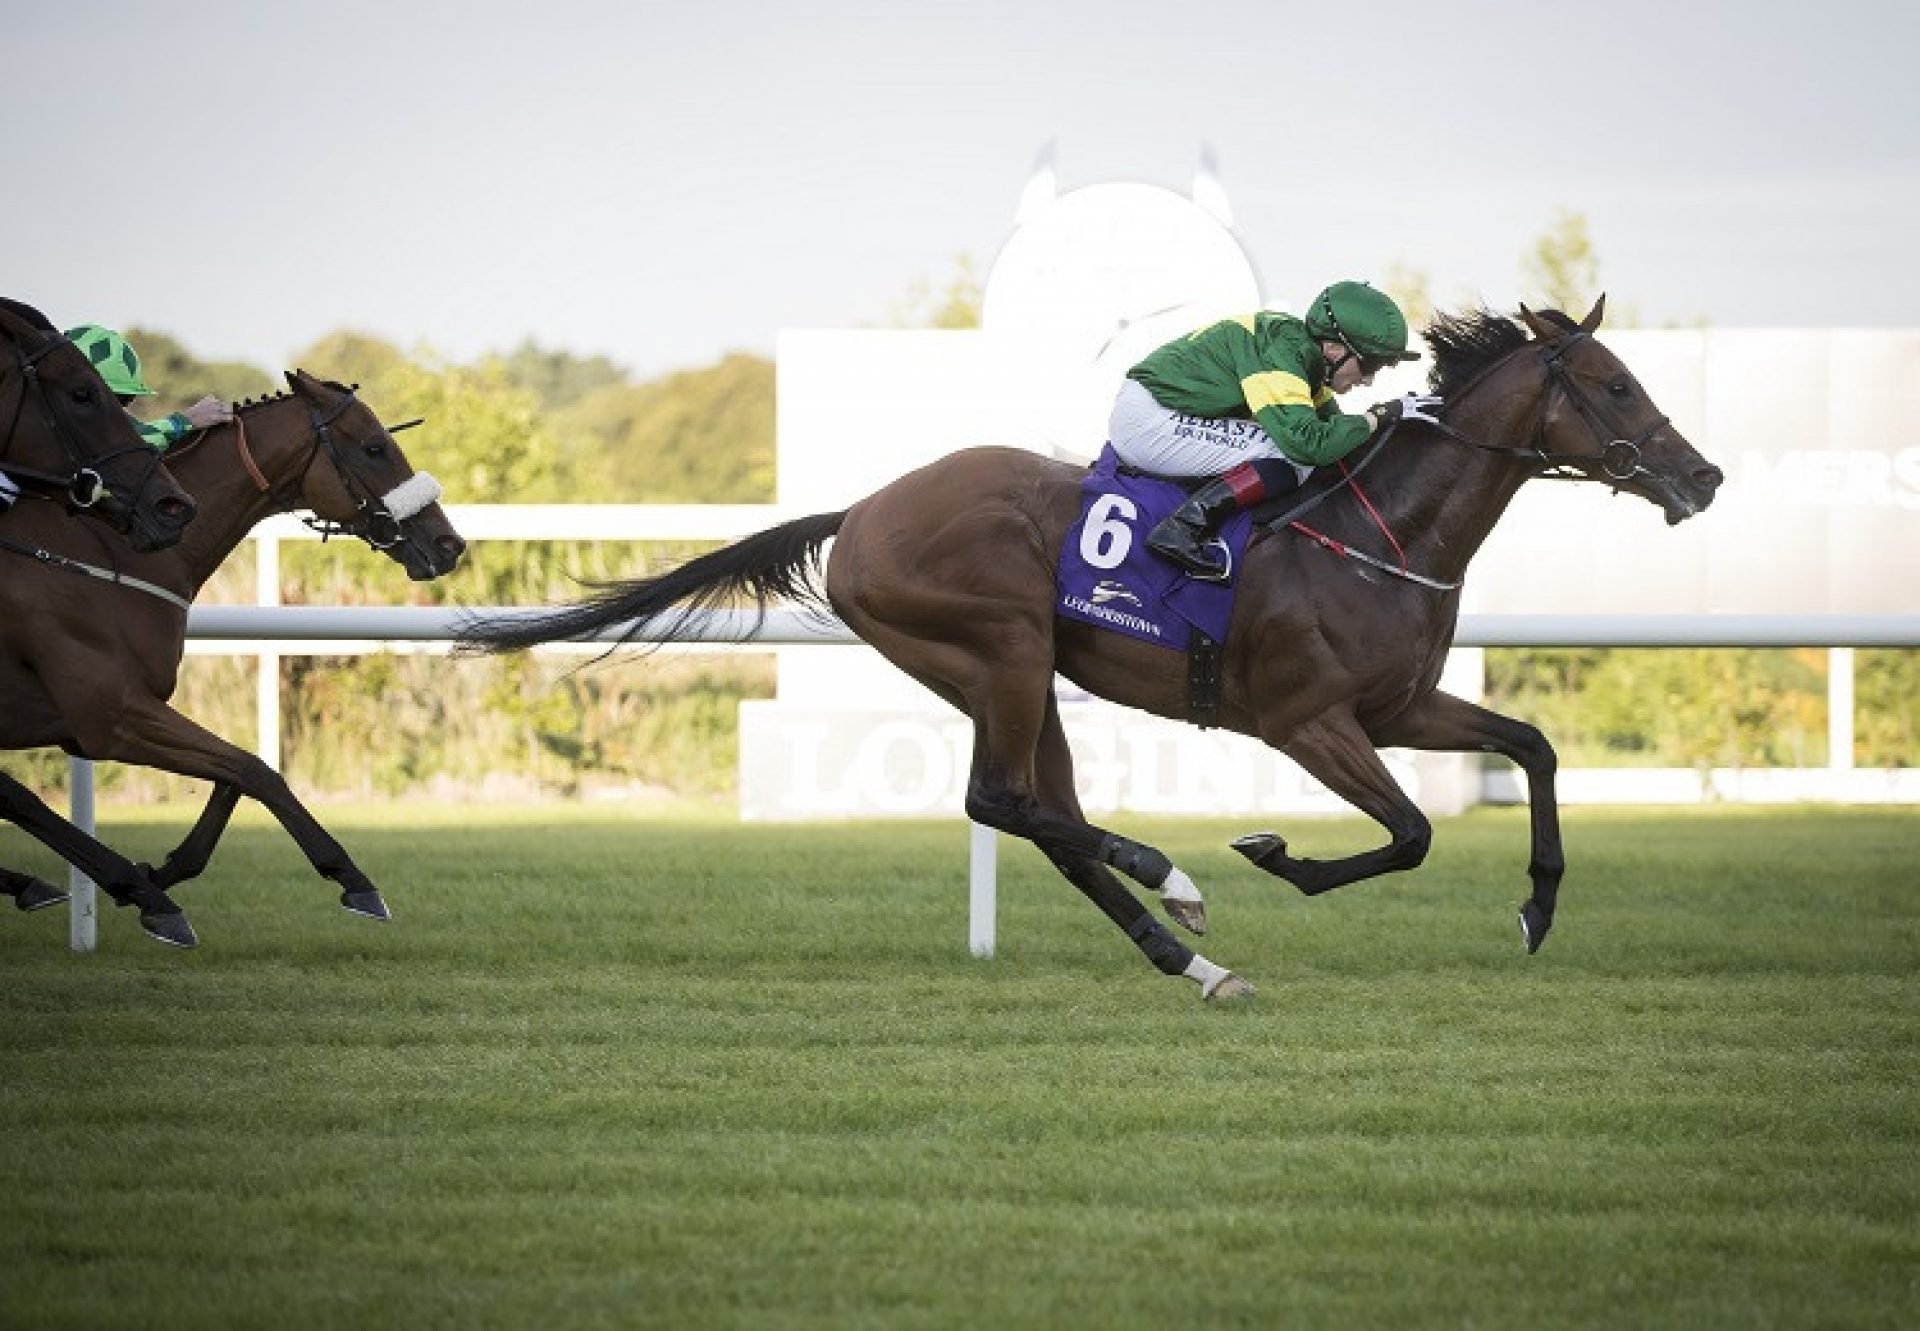 Alexios Komnenos (Choisir) winning the G3 Desmond Stakes at Leopardstown